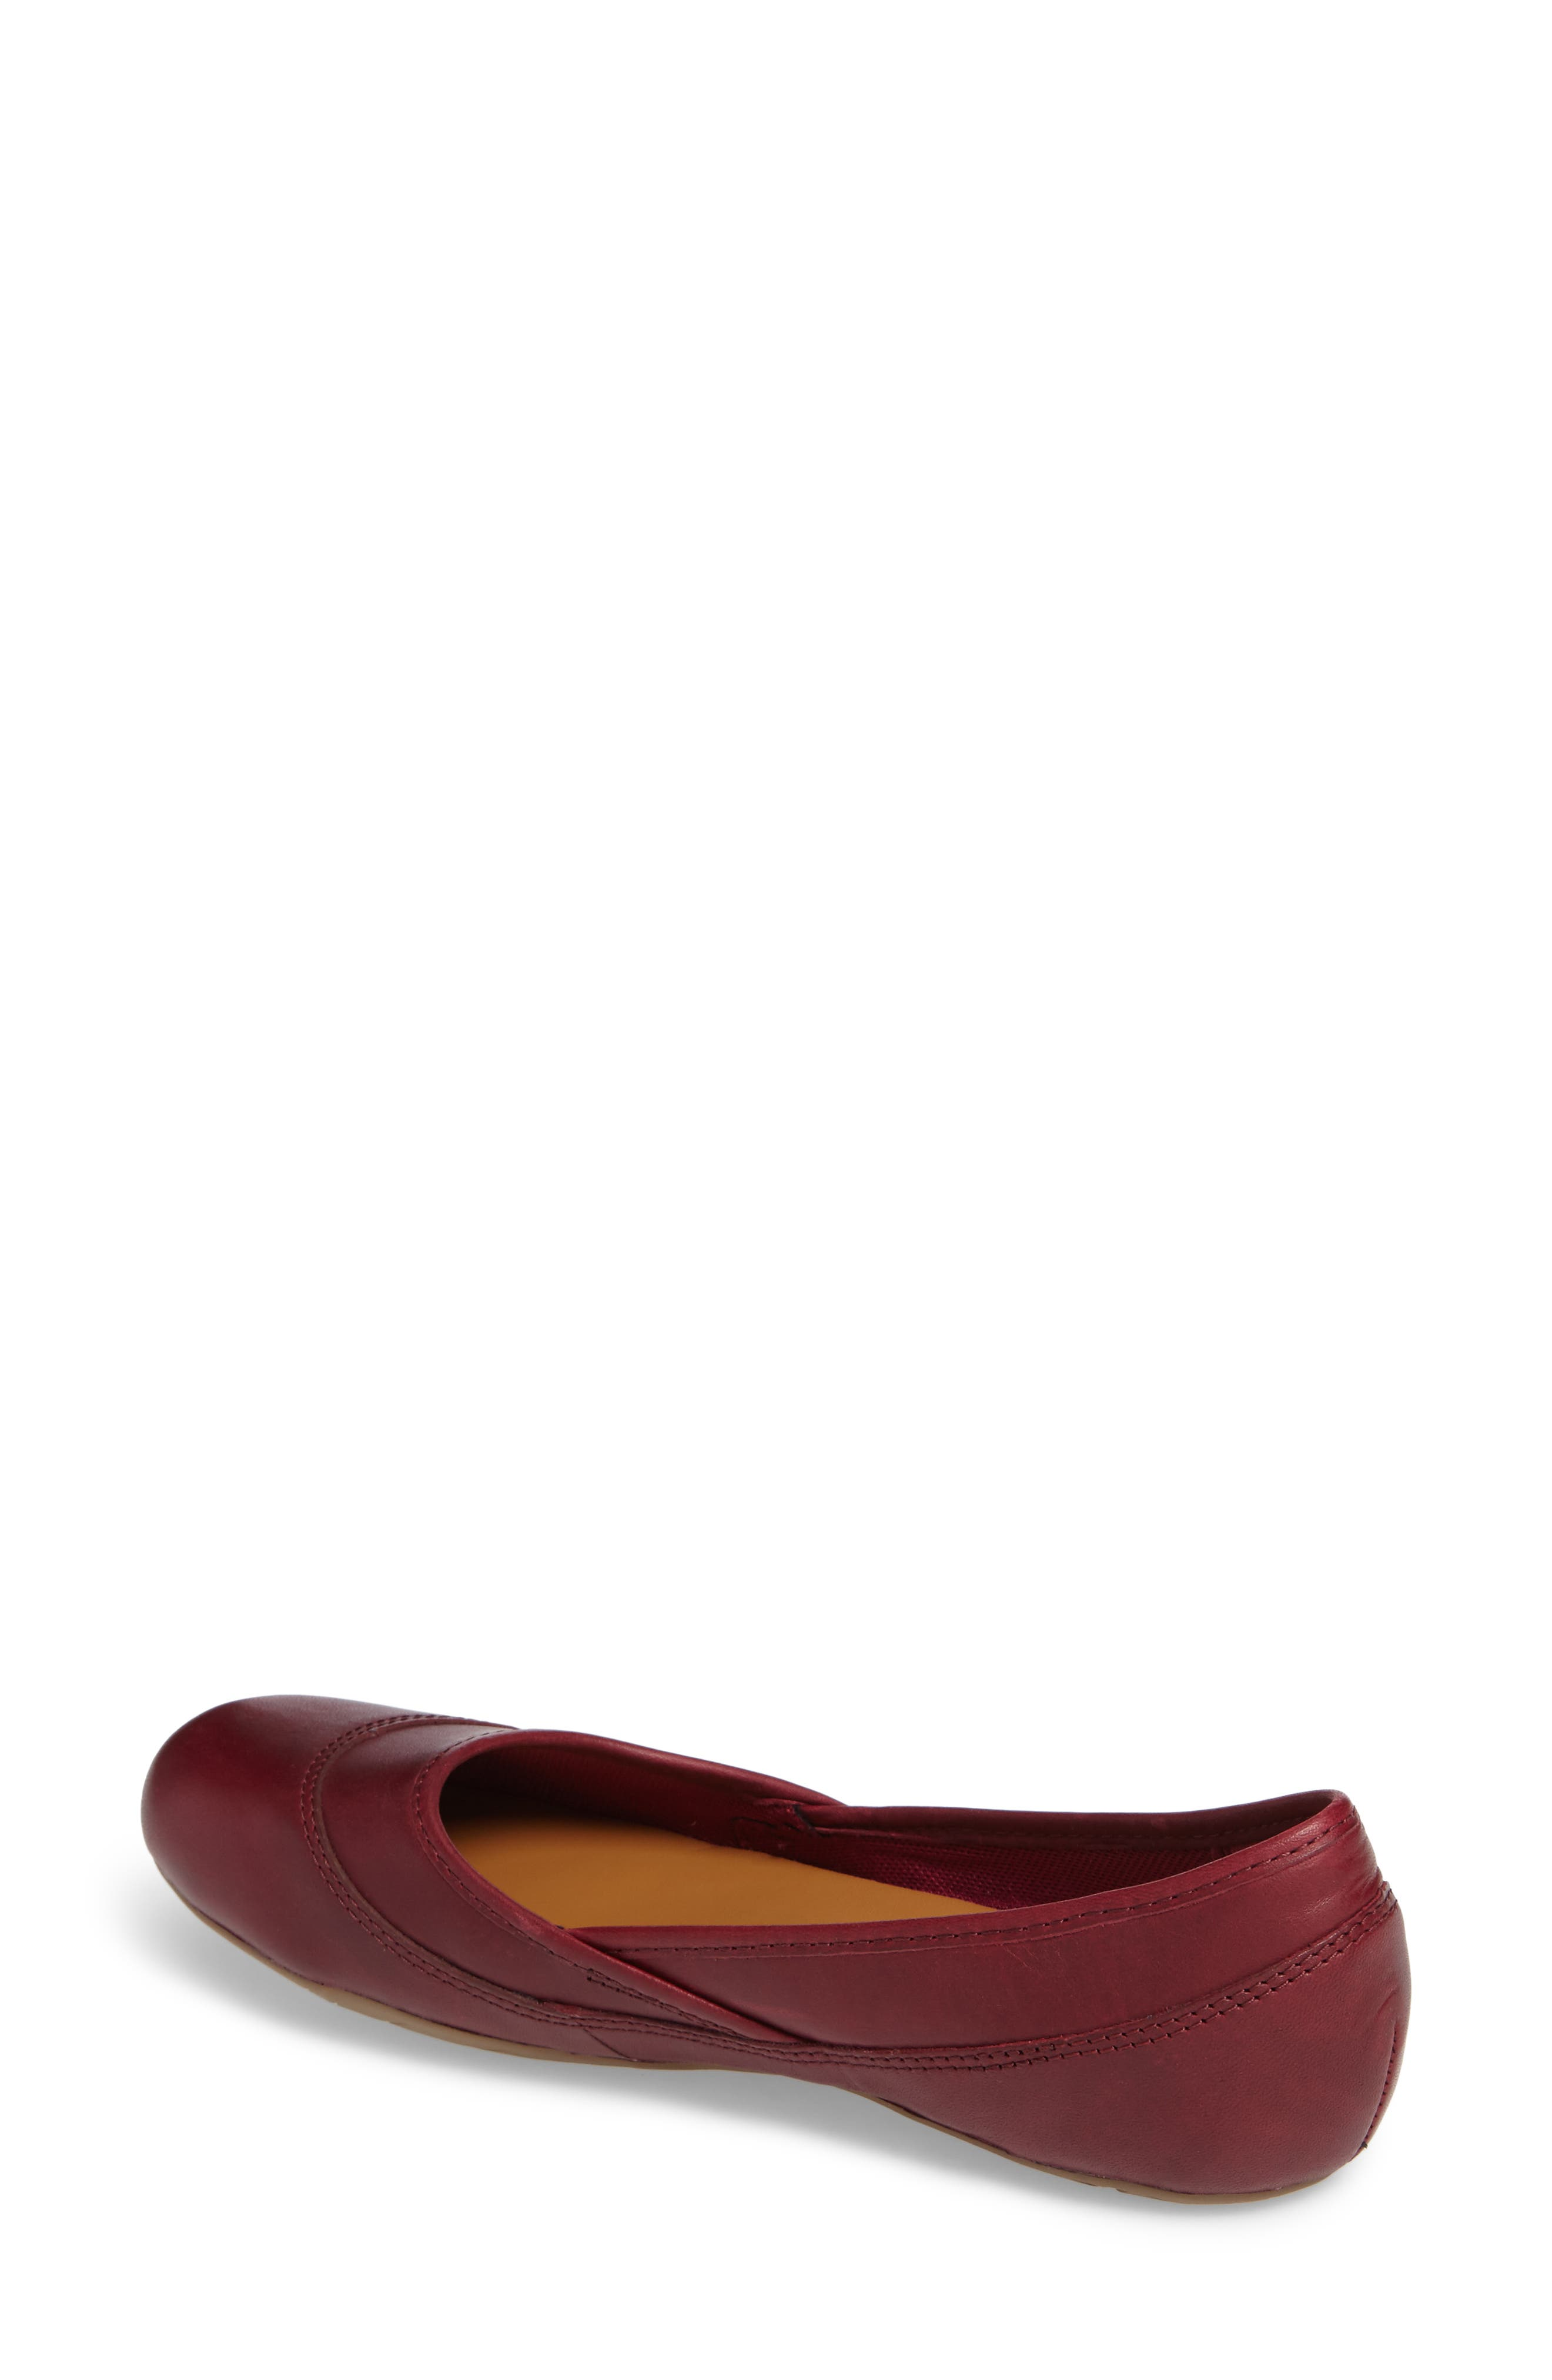 Ember Ballet Flat,                             Alternate thumbnail 2, color,                             Beet Red Leather